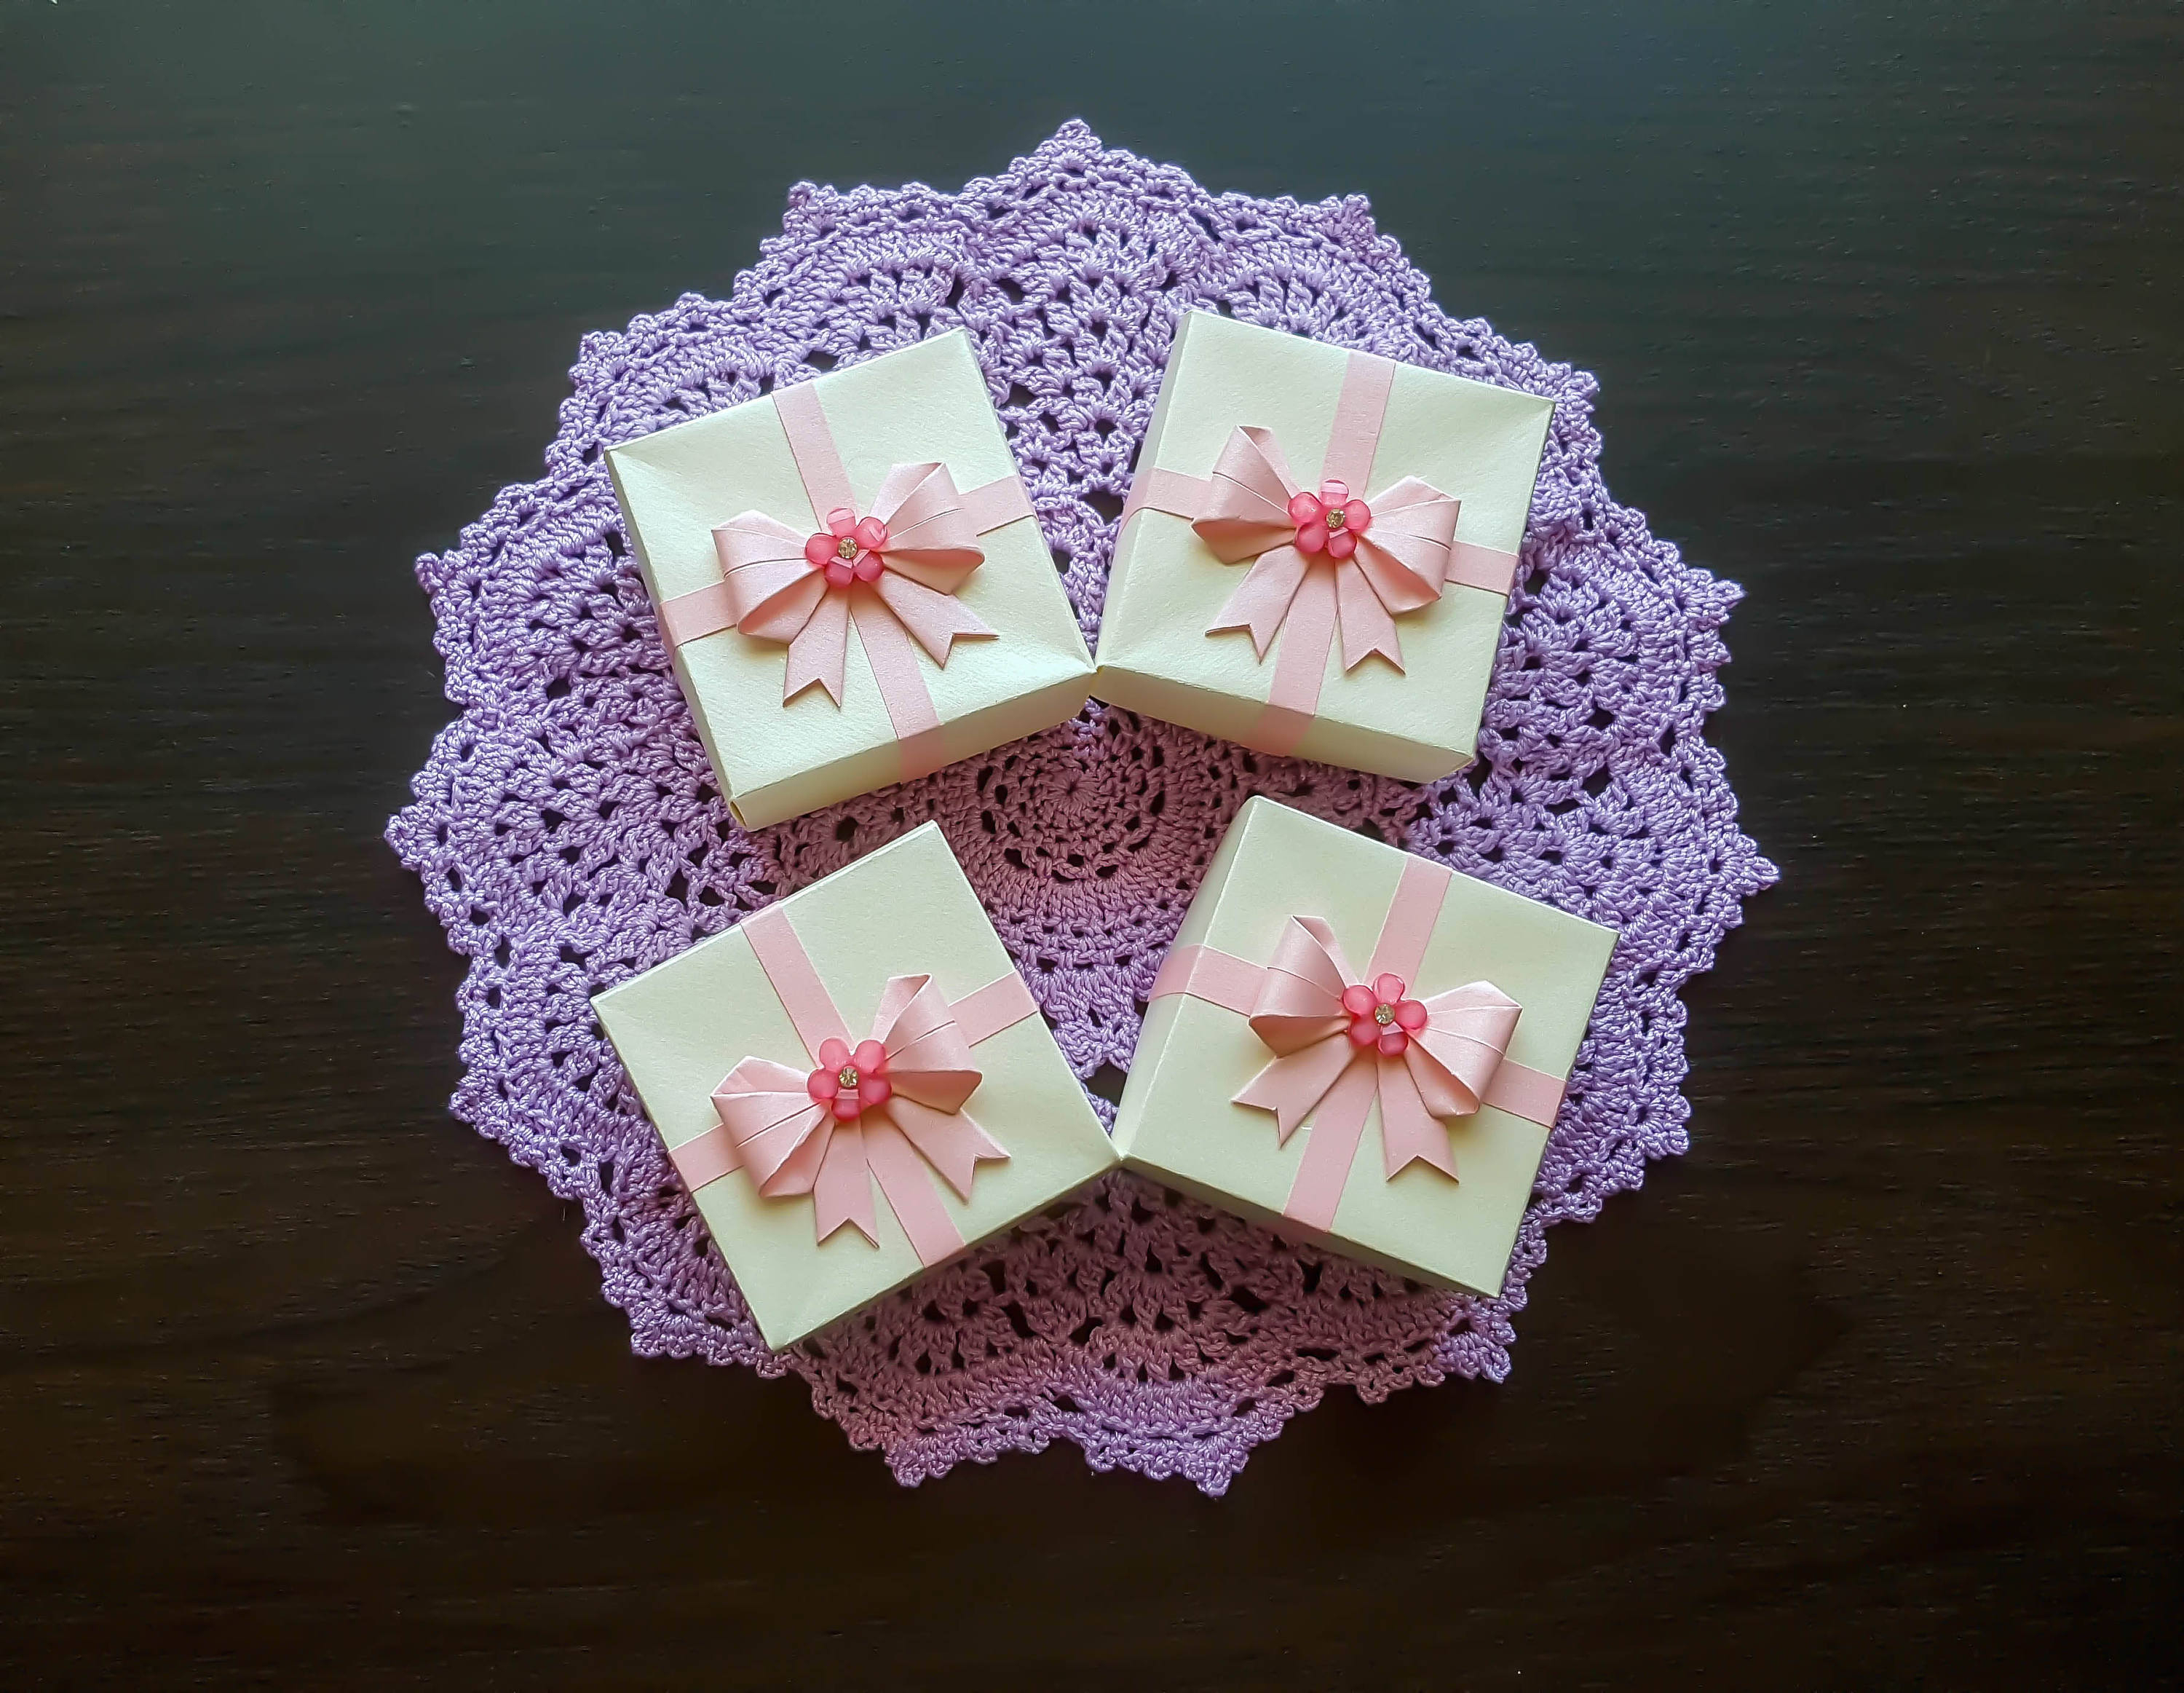 Origami Gift Boxes Ivory Origami Gift Boxes Pink Paper Ribbon With Pink Bow Set Of Four Boxes Origami Jewelry Box Wedding Decor Decorated Gift Box